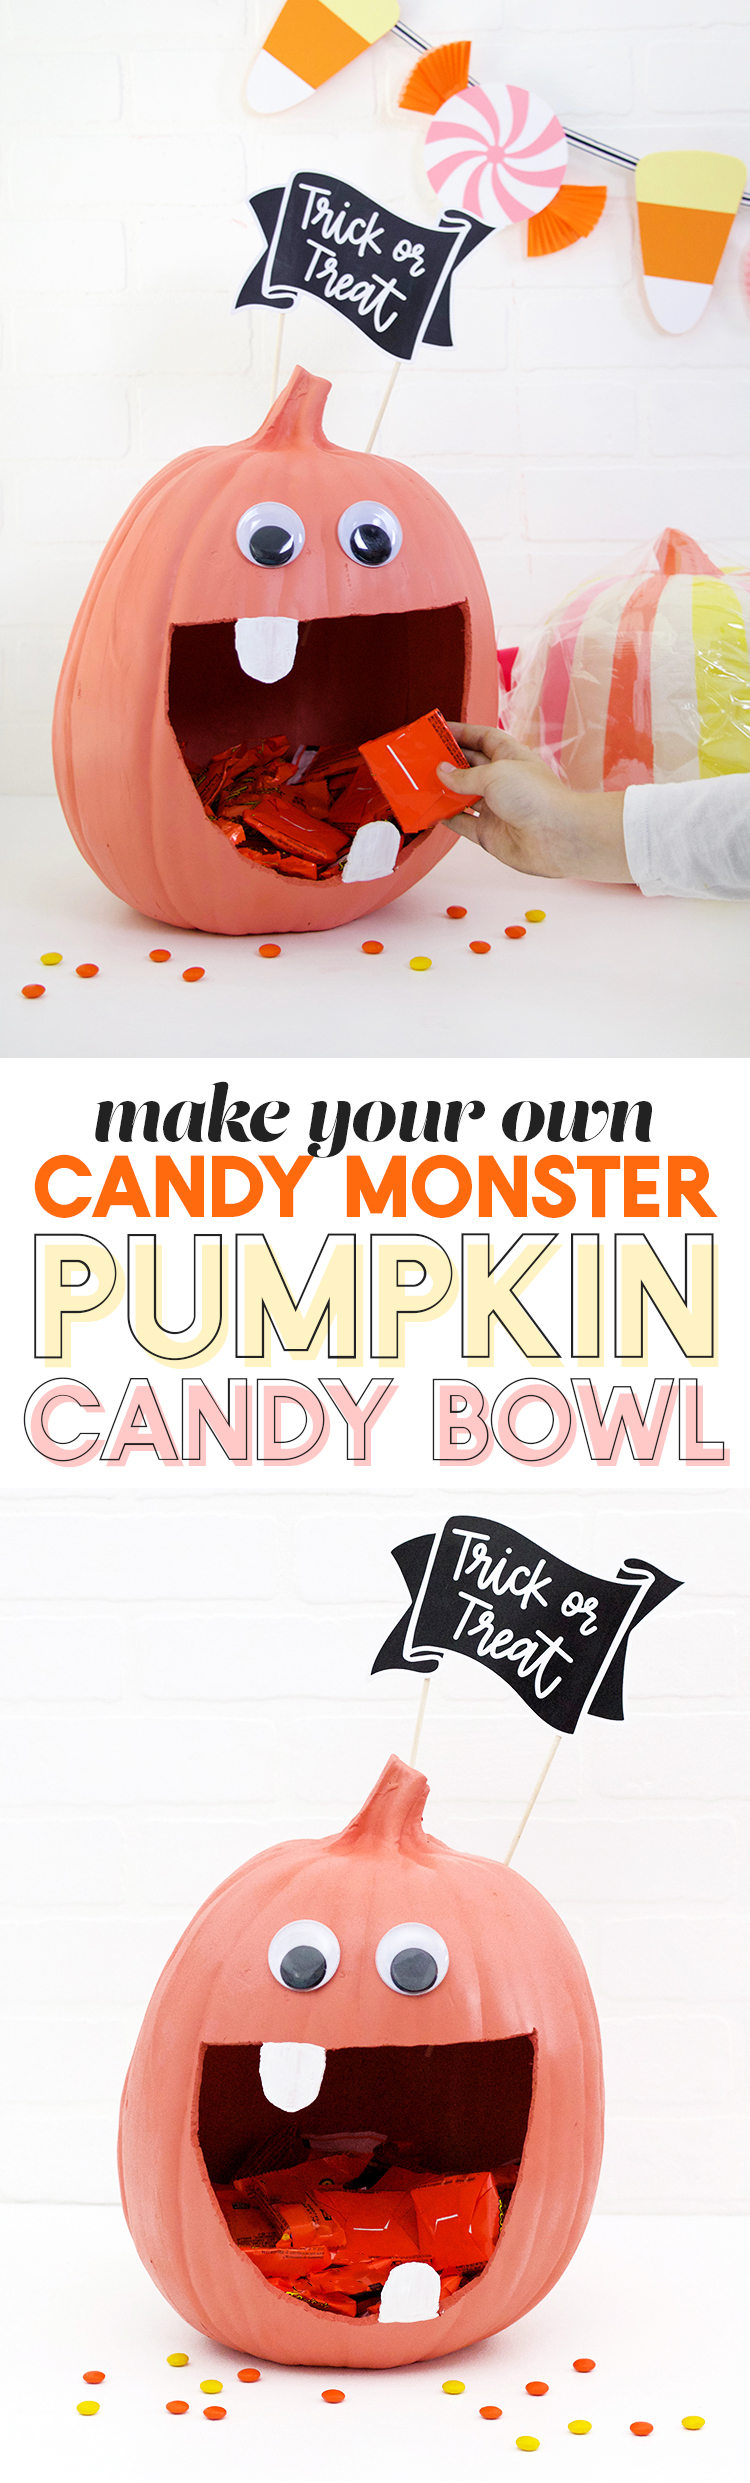 Diy pumpkin candy bowl diy halloween candy banner persia lou how to make a cute candy monster diy pumpkin candy bowl sciox Gallery